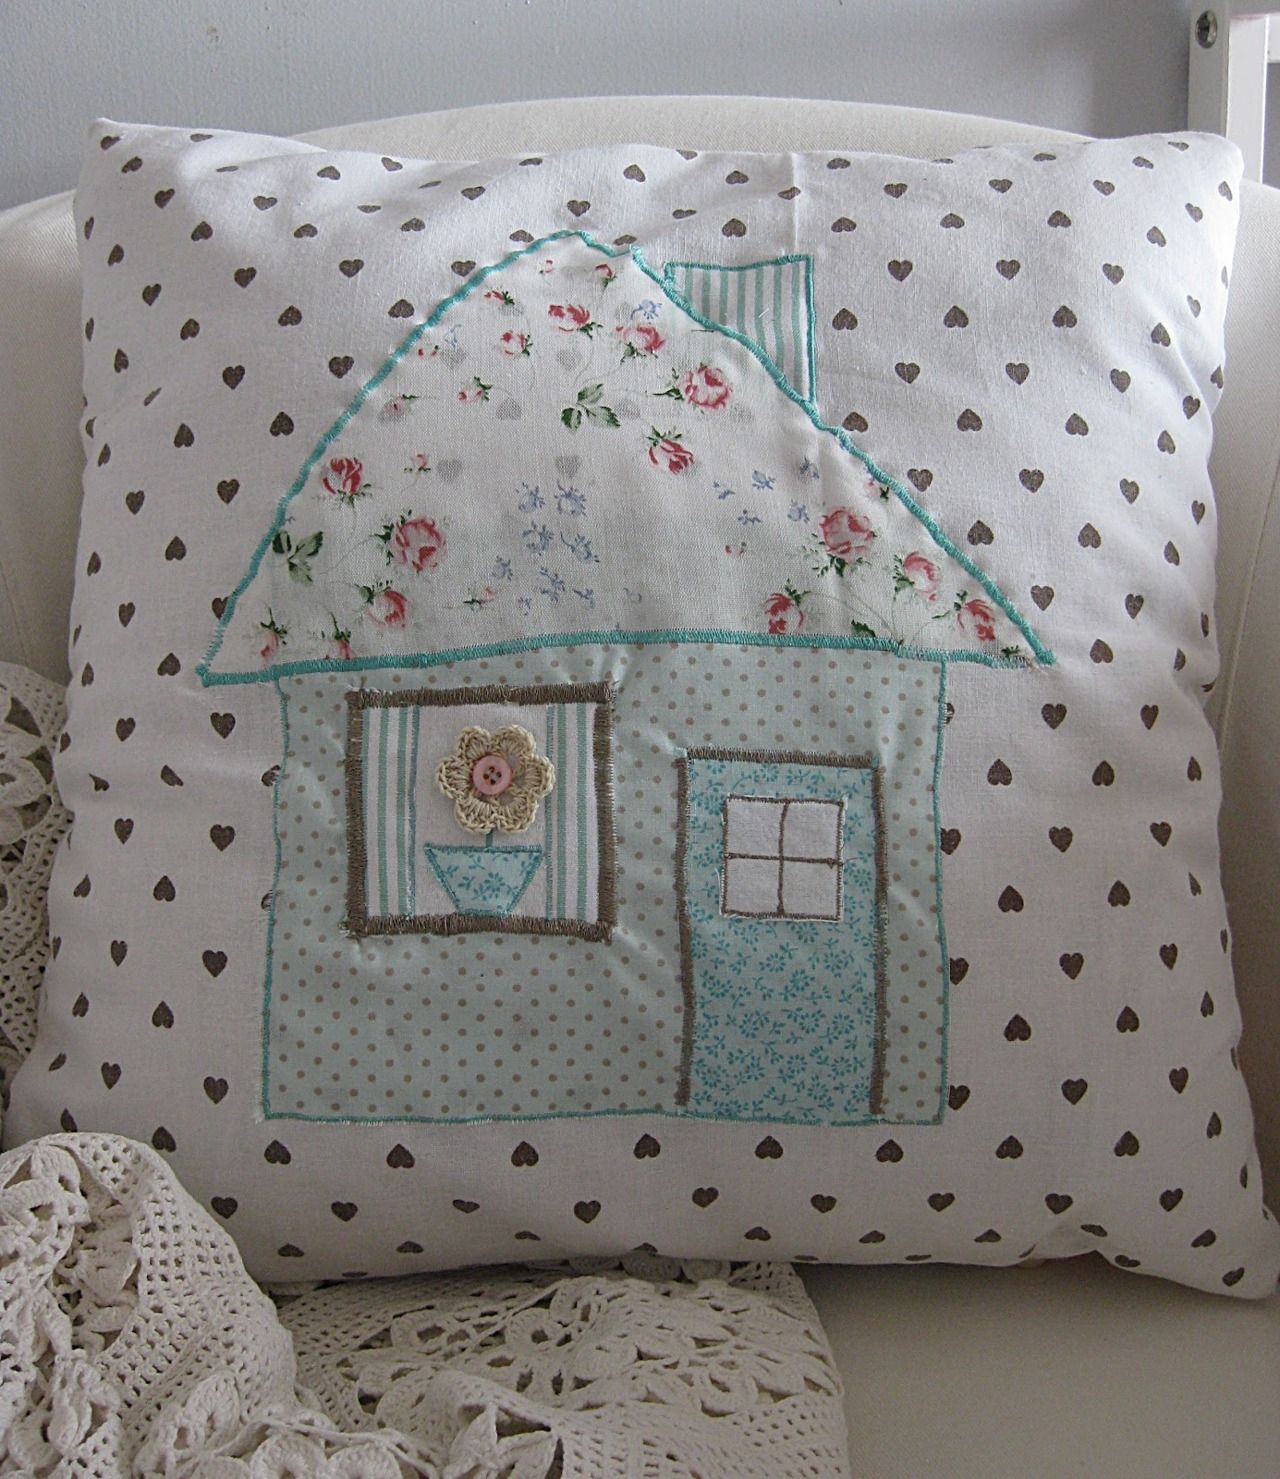 Ana rosa pillowsthrows and blankets pinterest ana rosa